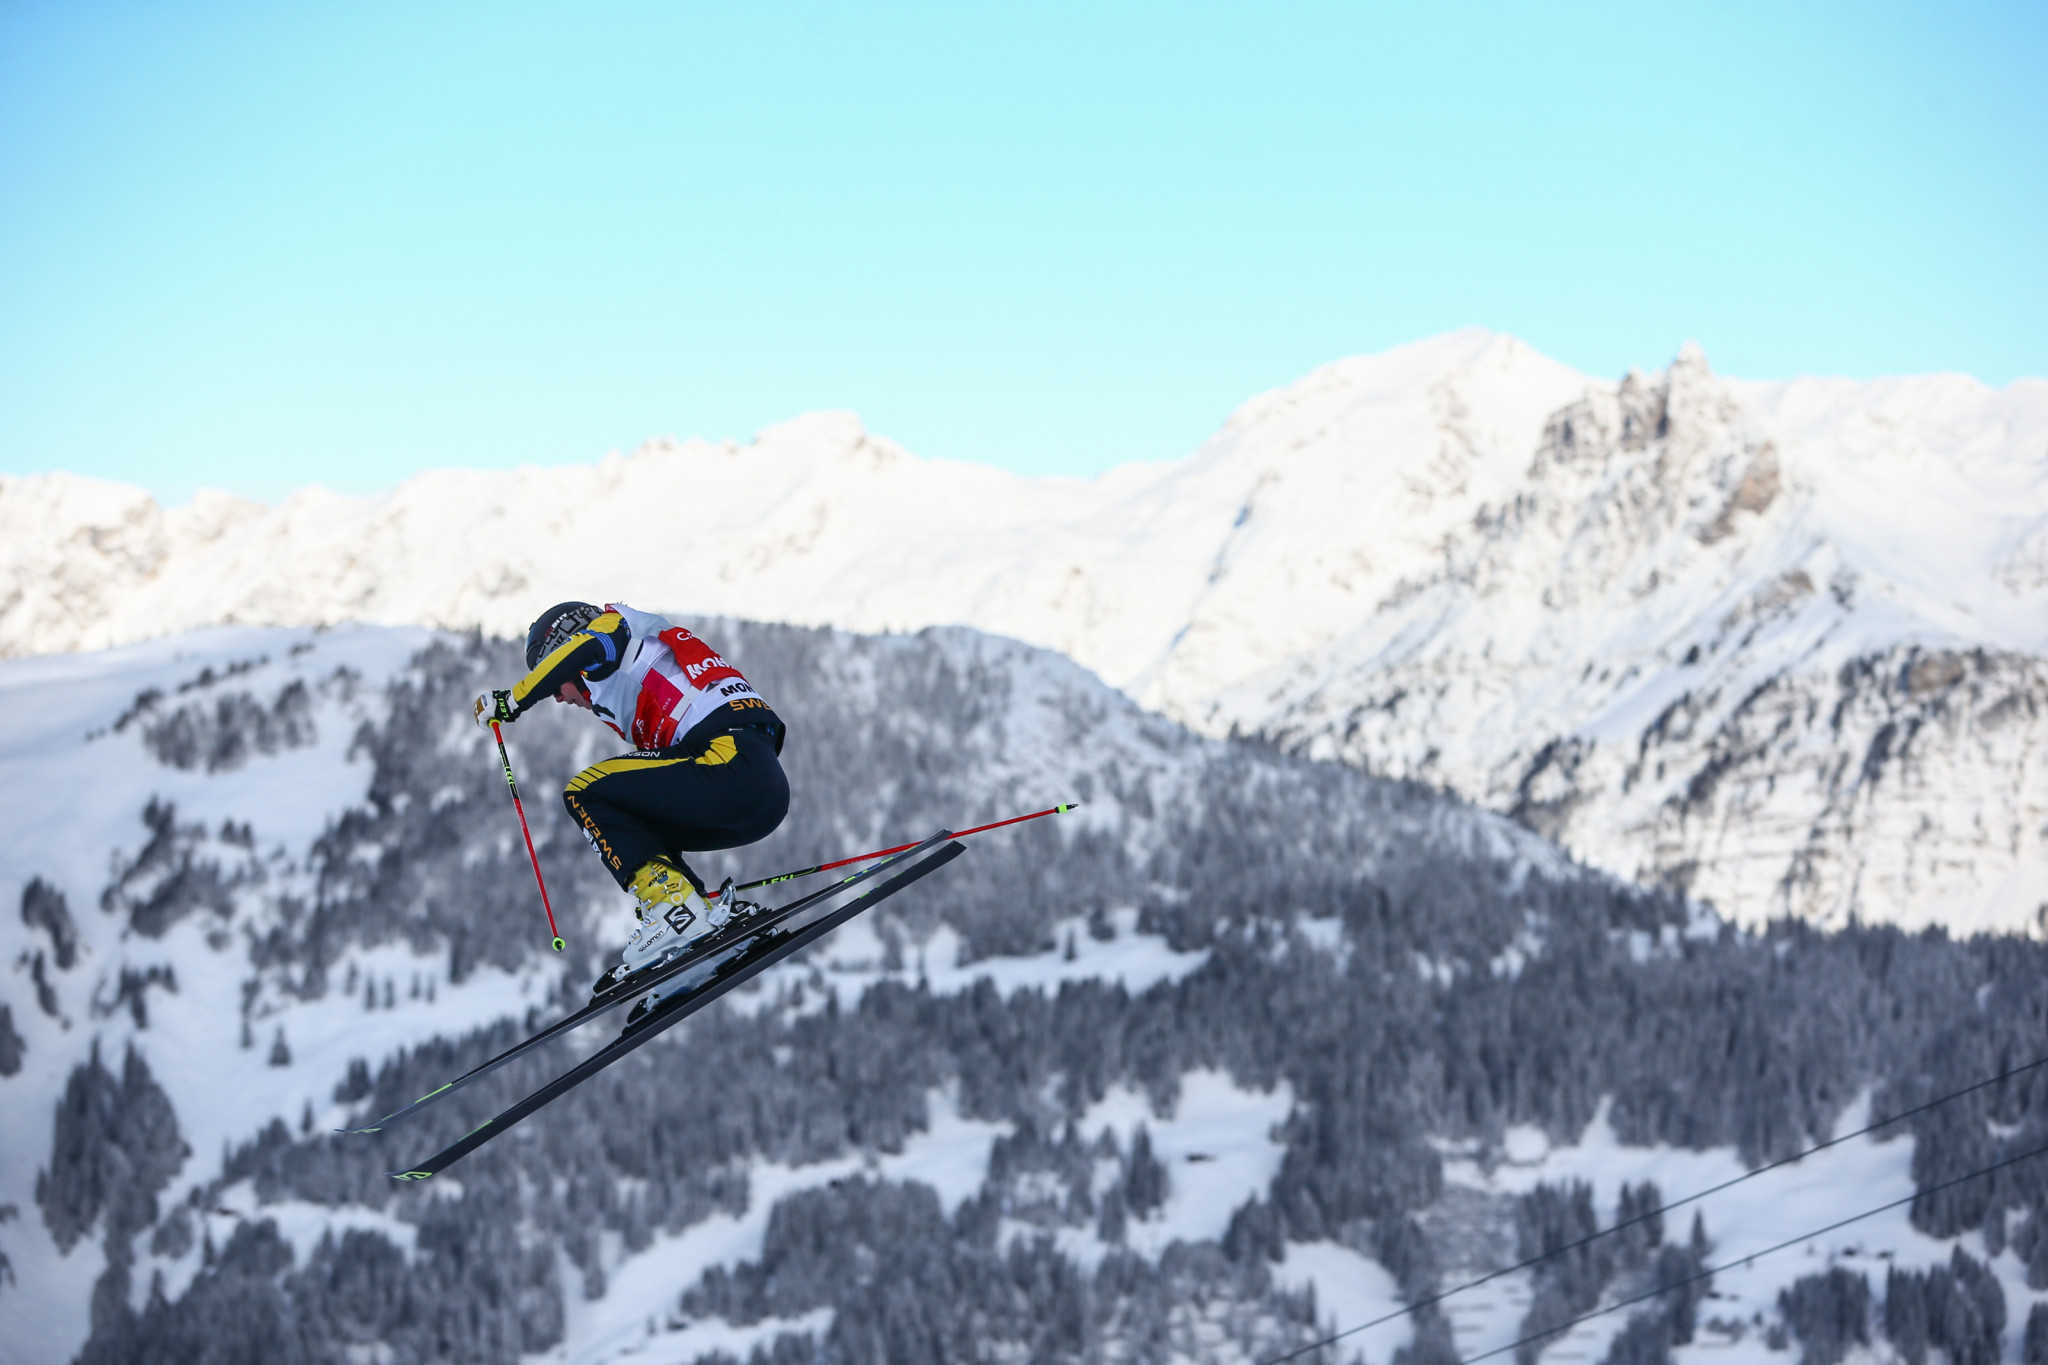 Sweden's Näslund keeps up good form on home snow in Freestyle Ski Cross World Cup